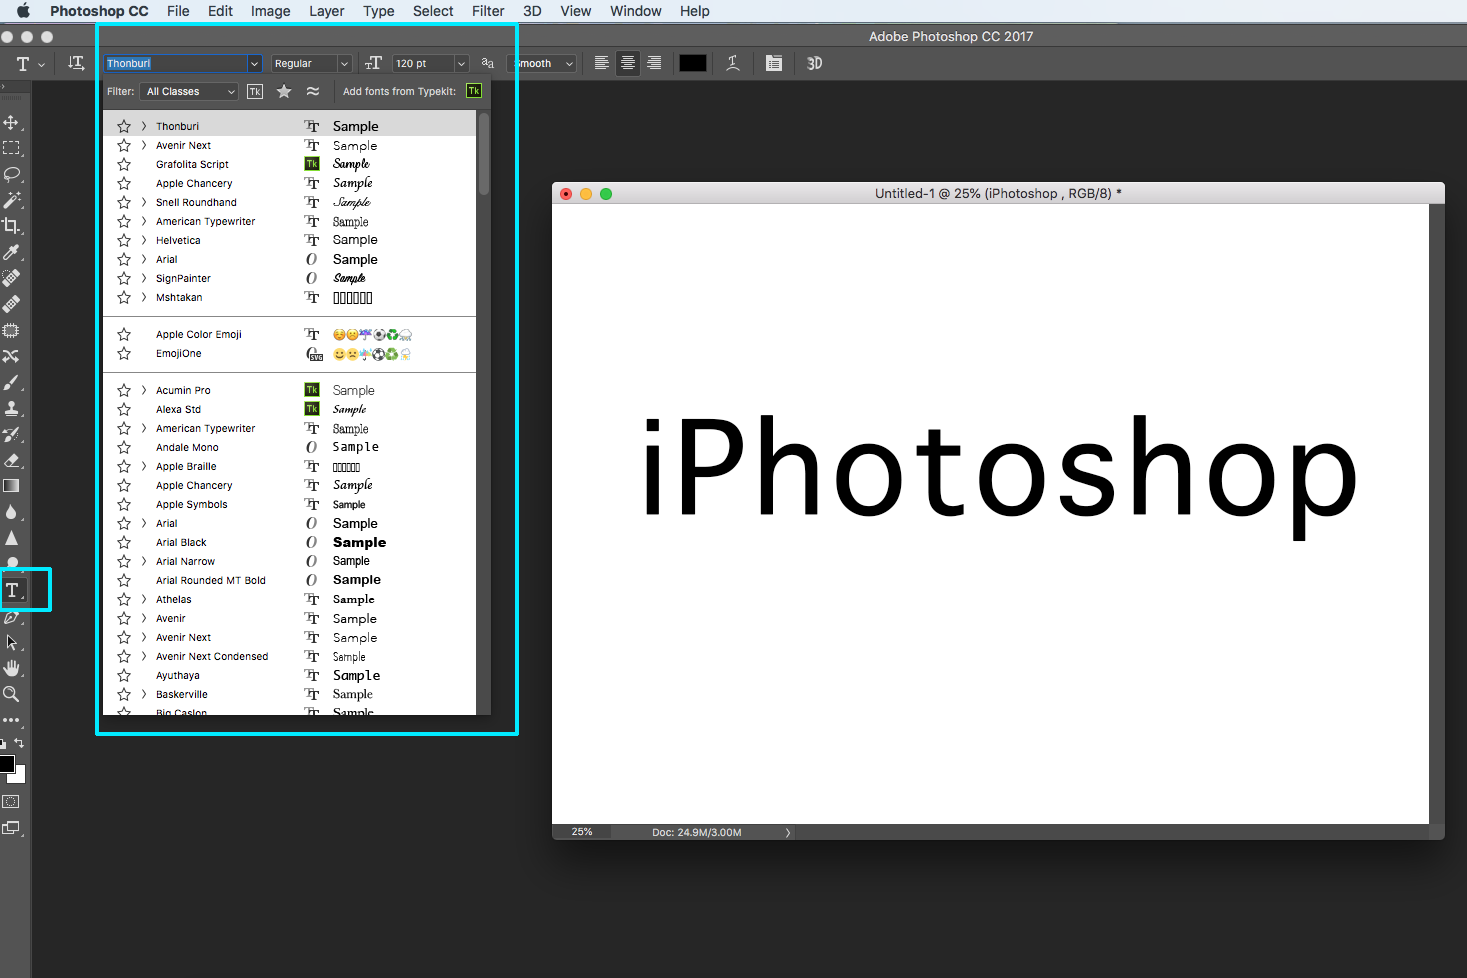 How to Create Logo and Watermark Signature in Adobe Photoshop